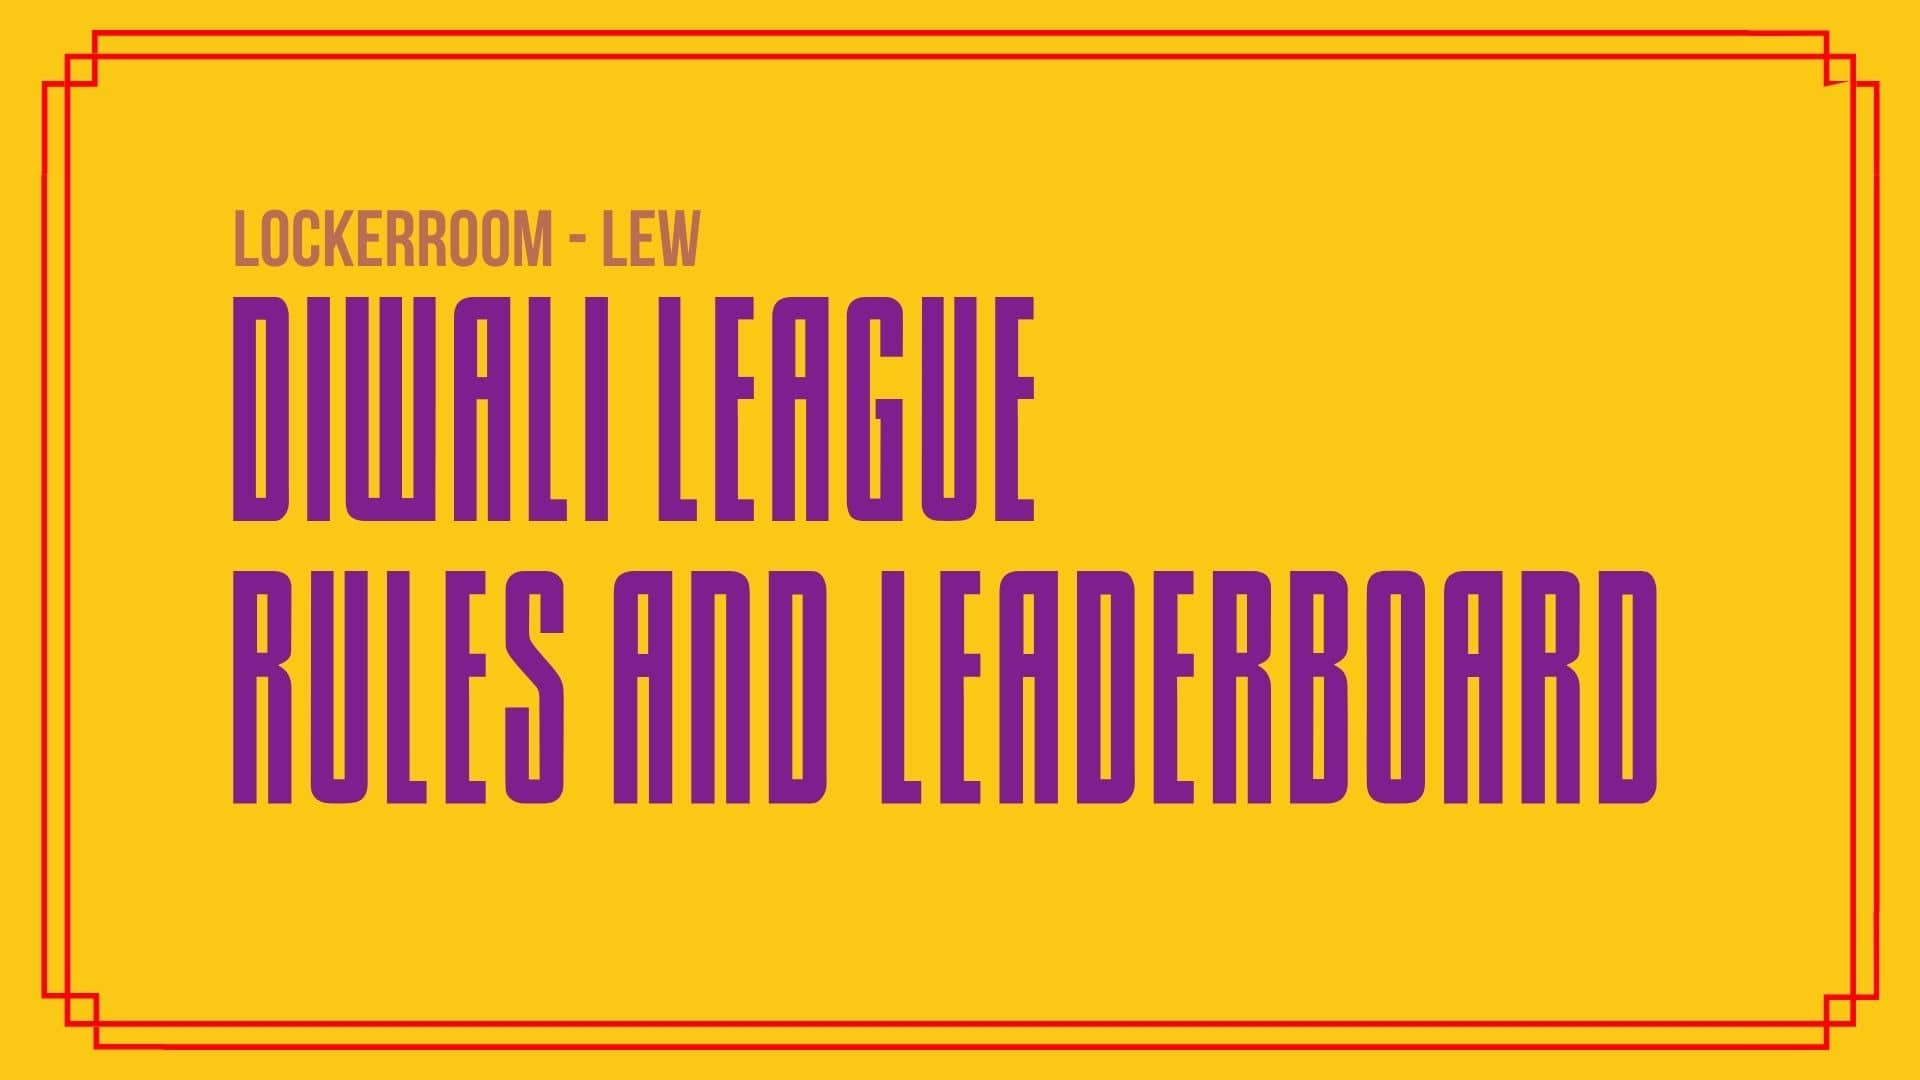 LEW-Lockerroom-Diwali-League-Contest